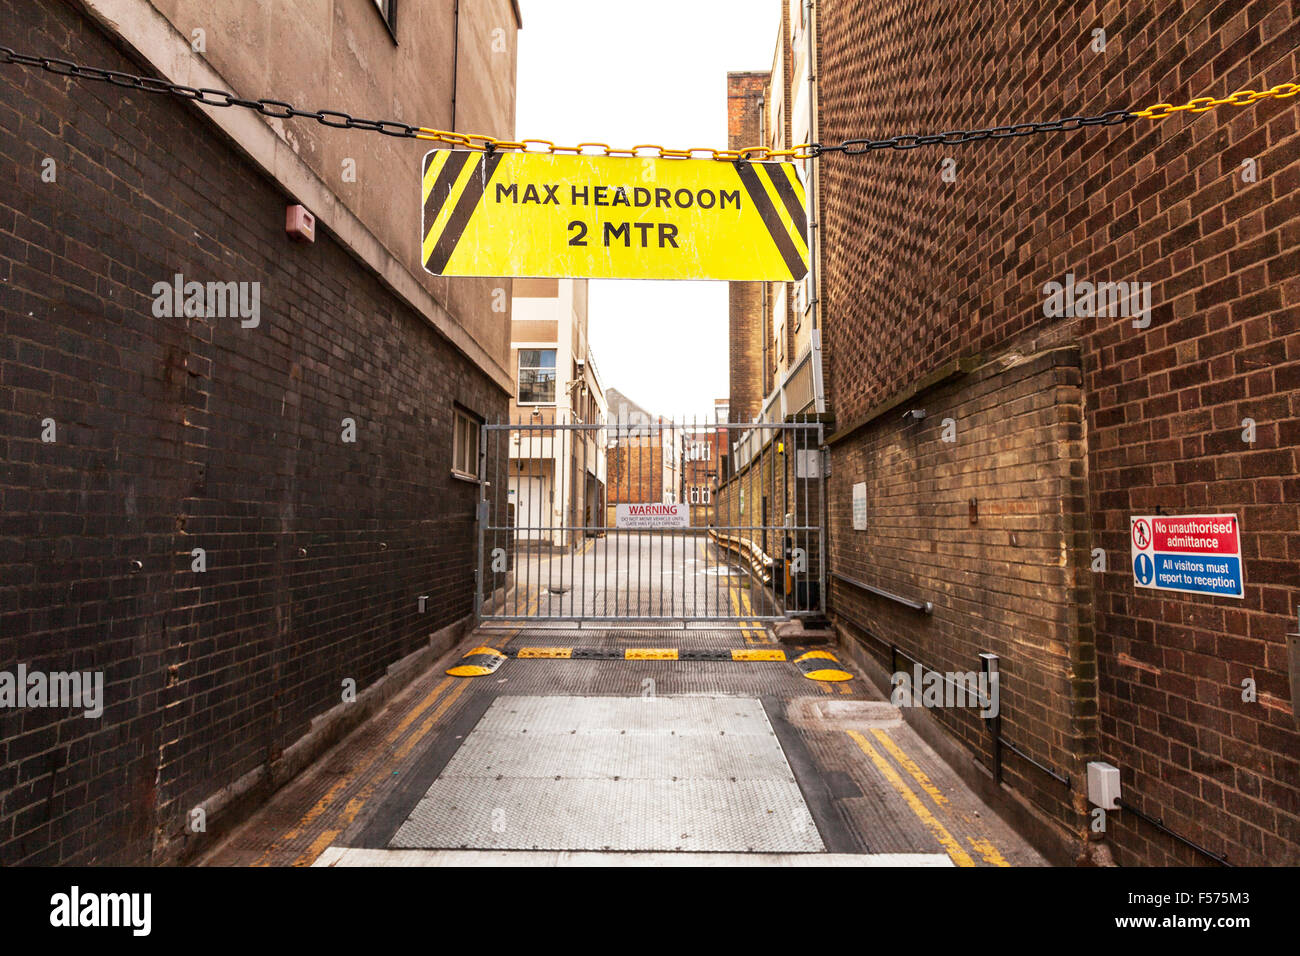 Max headroom maximum clearance 2 MTR meters warning sign danger above room - Stock Image